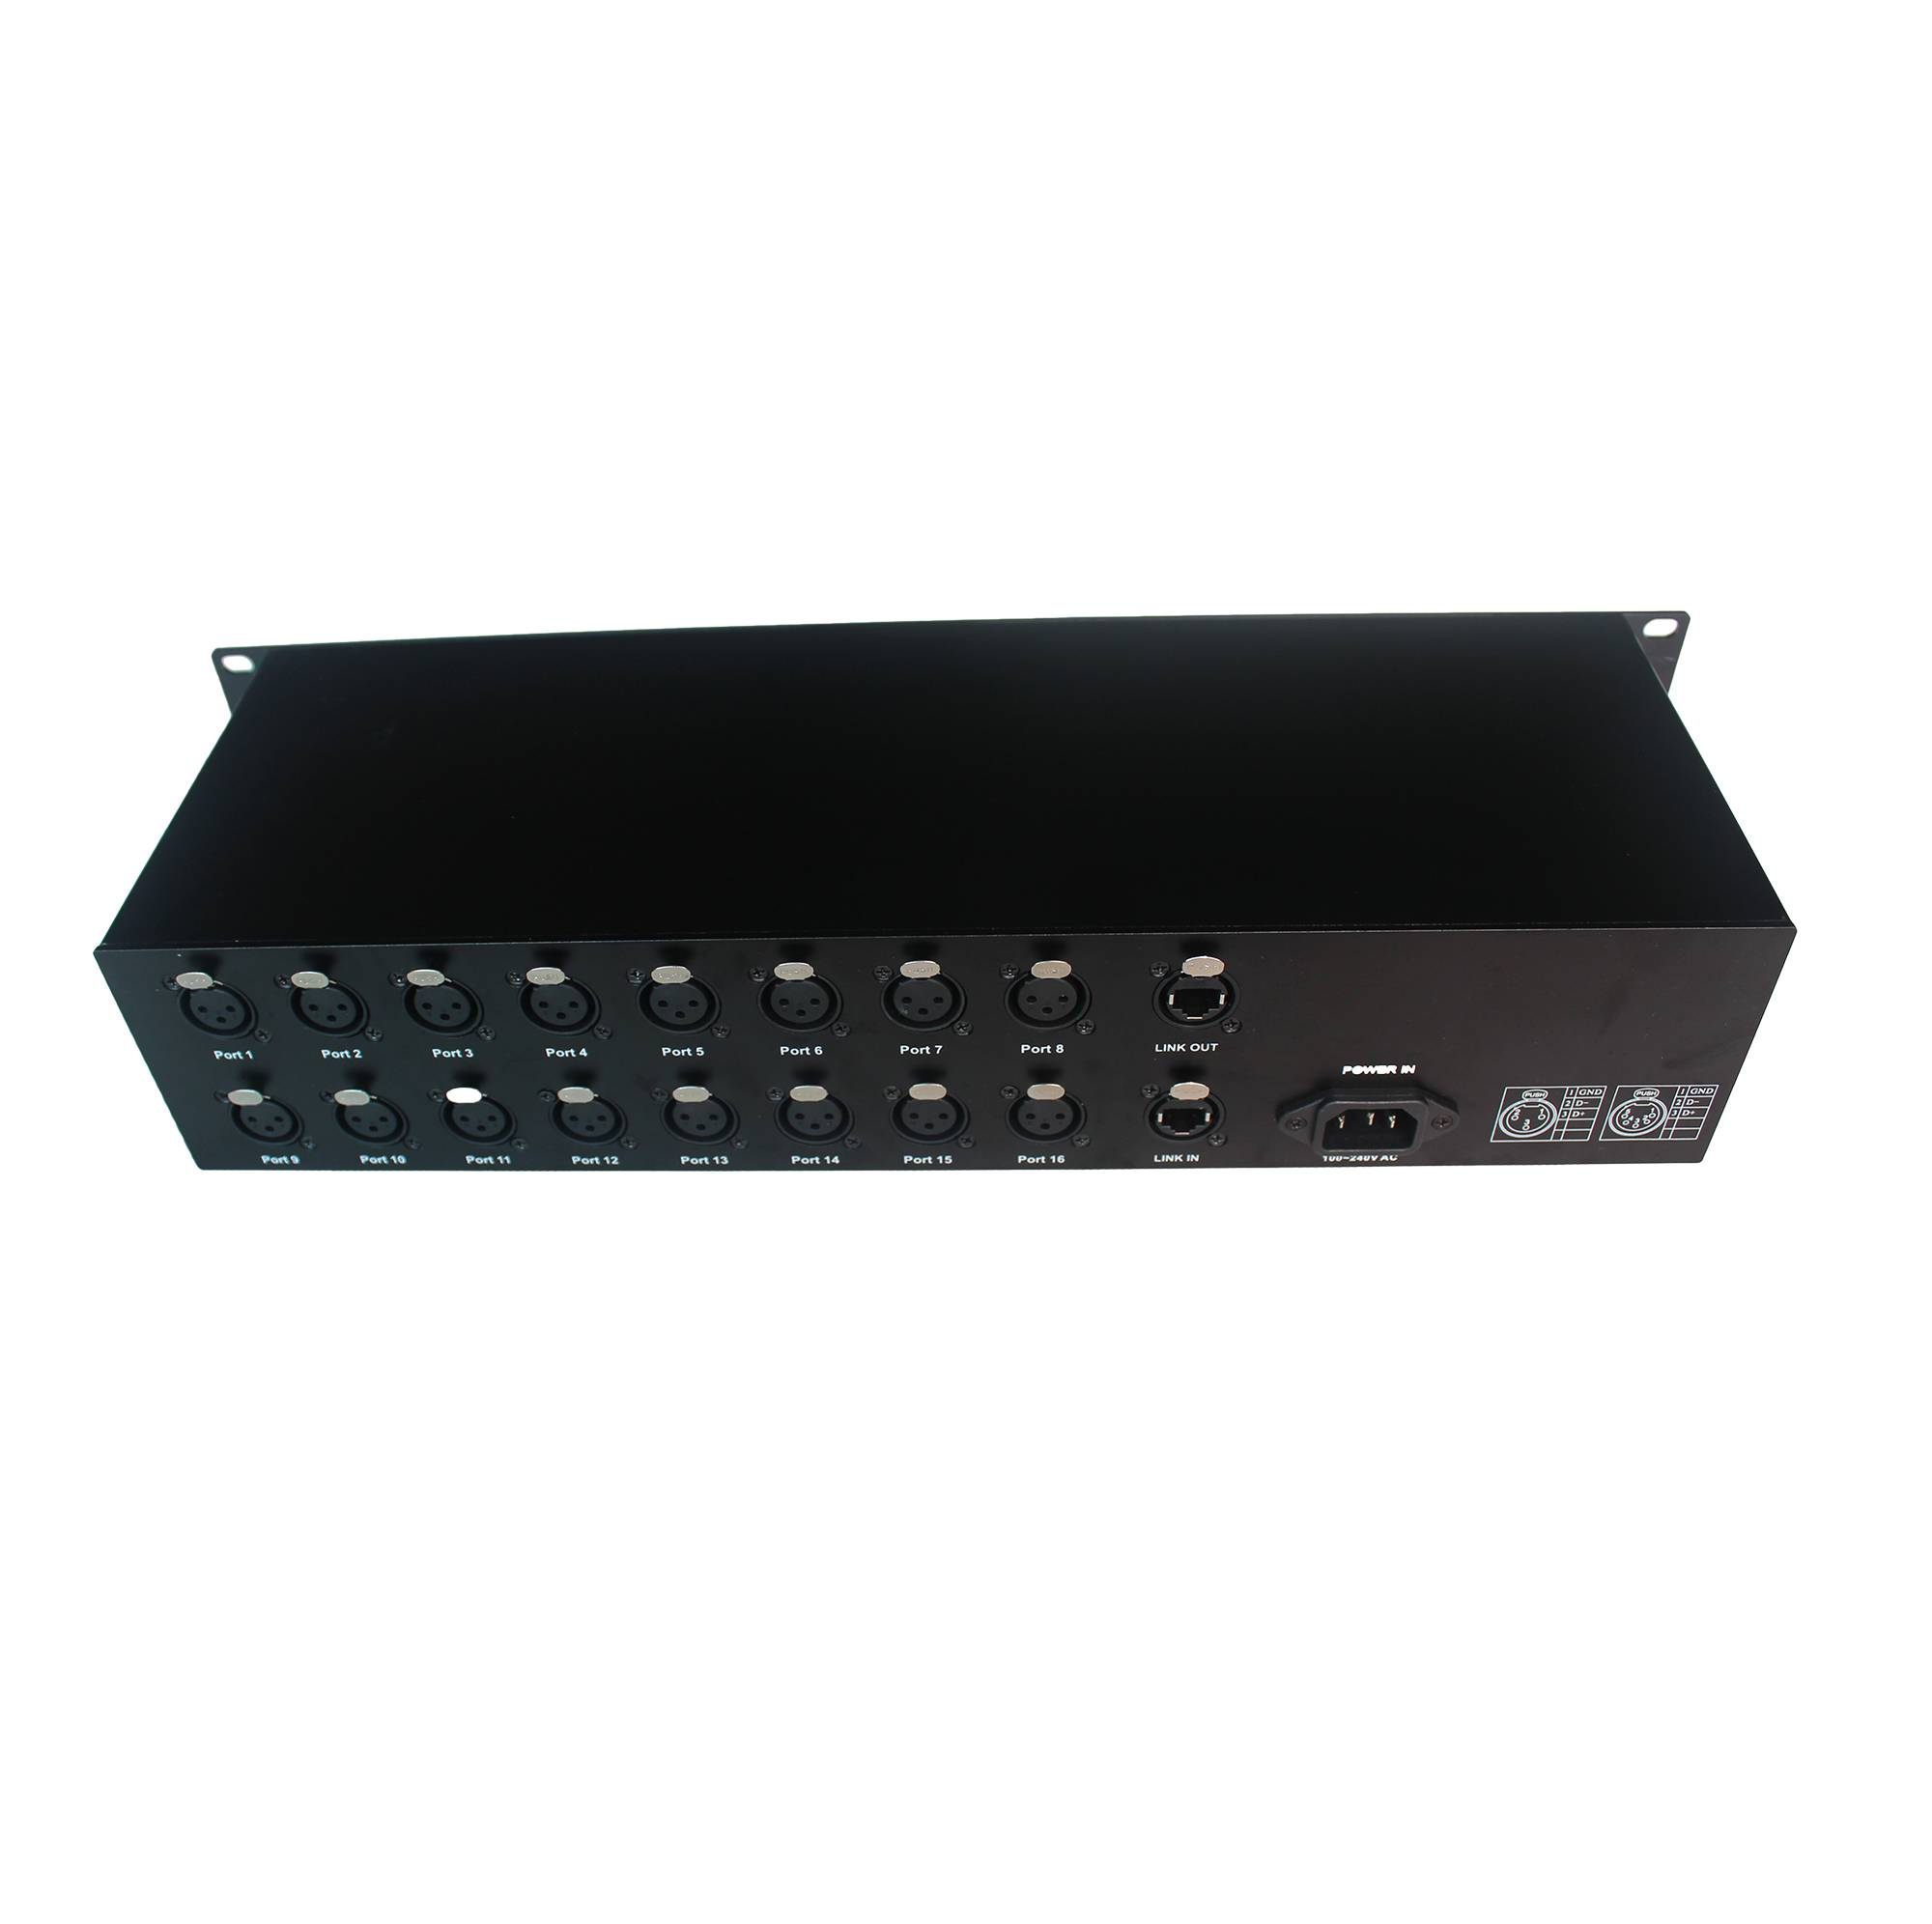 Best-Selling Dmx Panel – DMX ARTNET CONTROLLER – LED Innovator